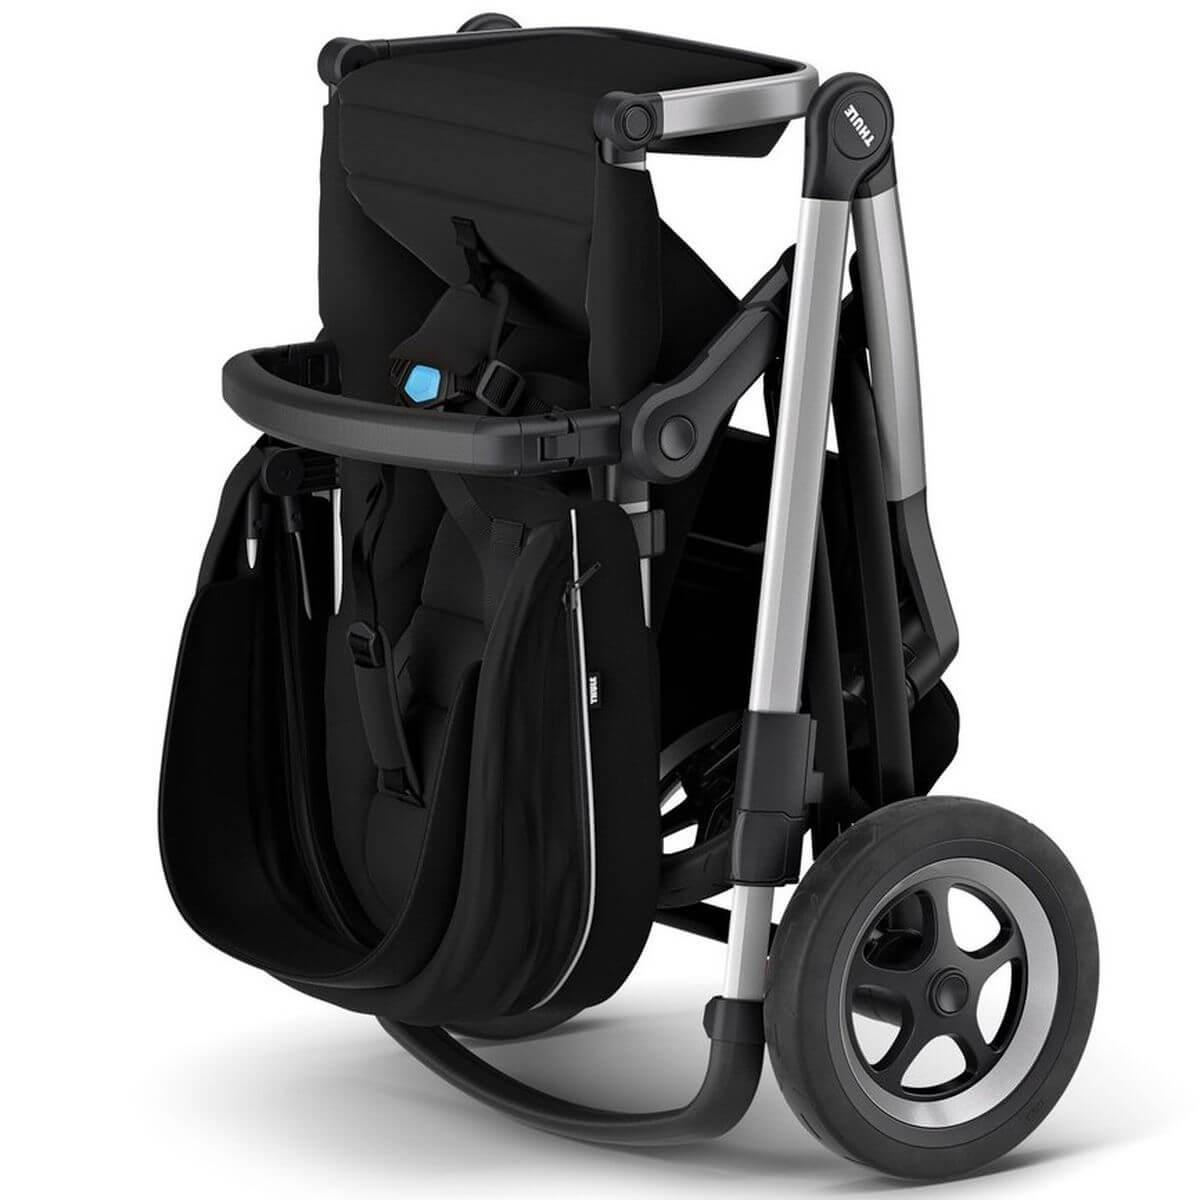 Assise-poussette SLEEK Thule midnight black